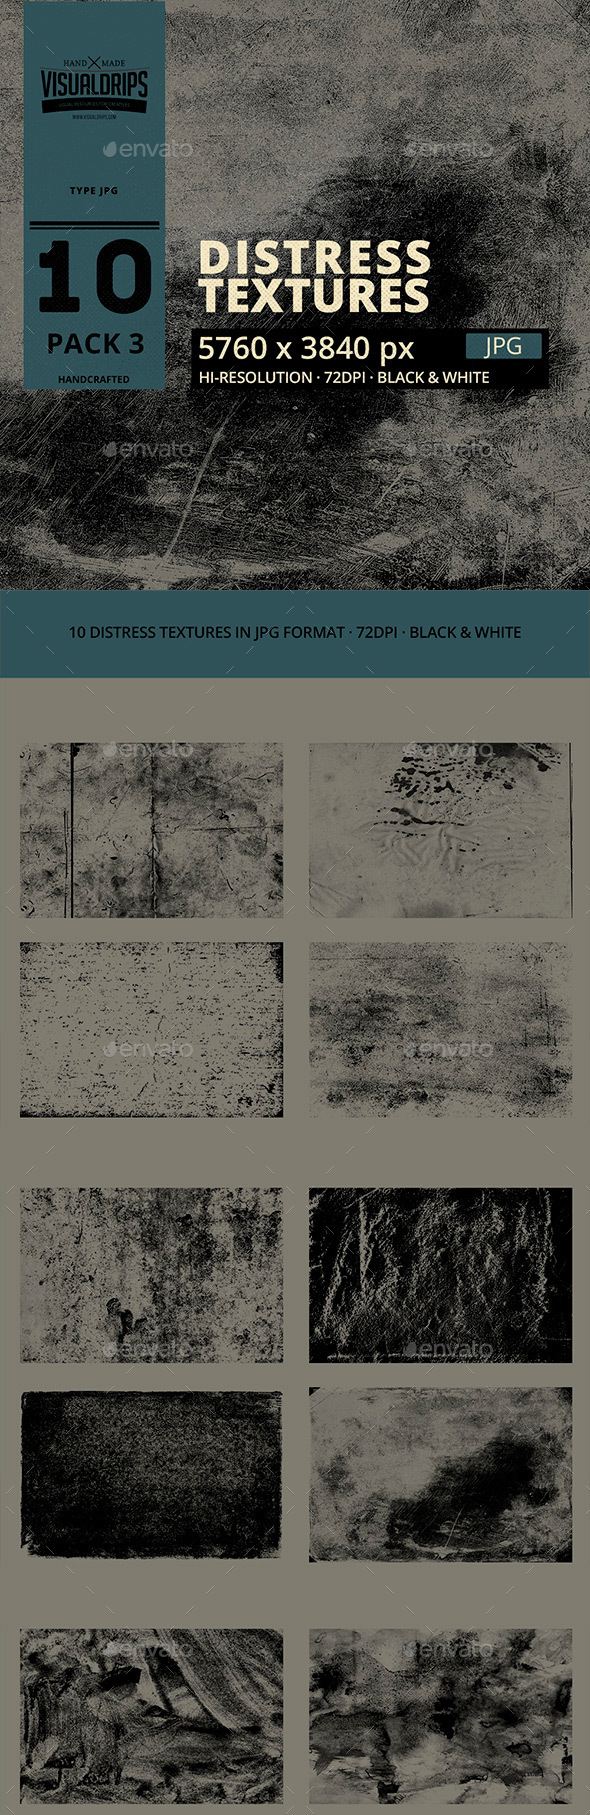 Distress Texture Pack-03 - Industrial / Grunge Textures